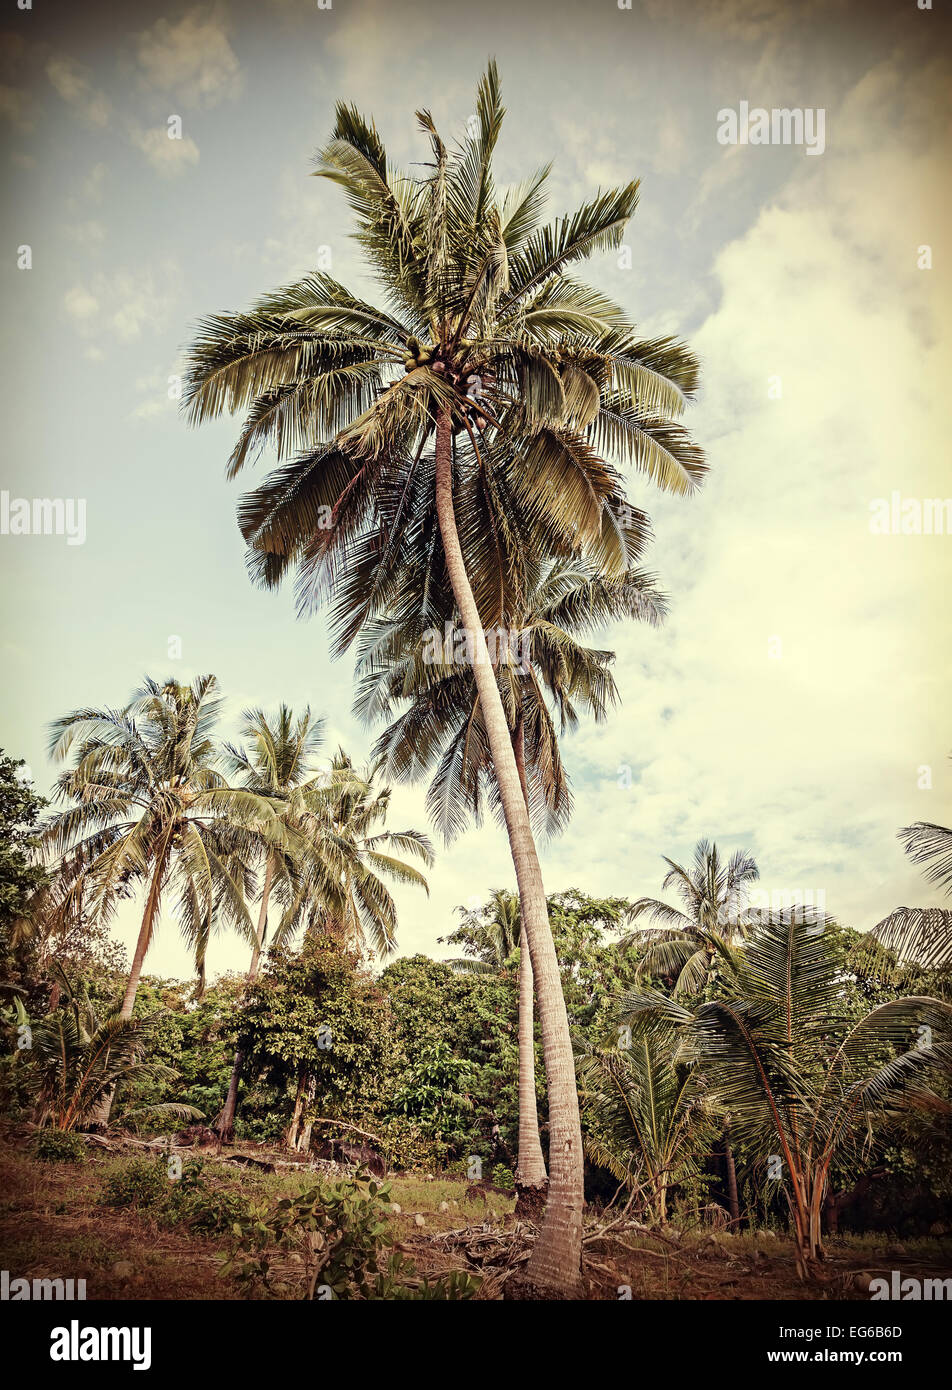 Vintage retro stylized tropical nature background with palm trees. - Stock Image